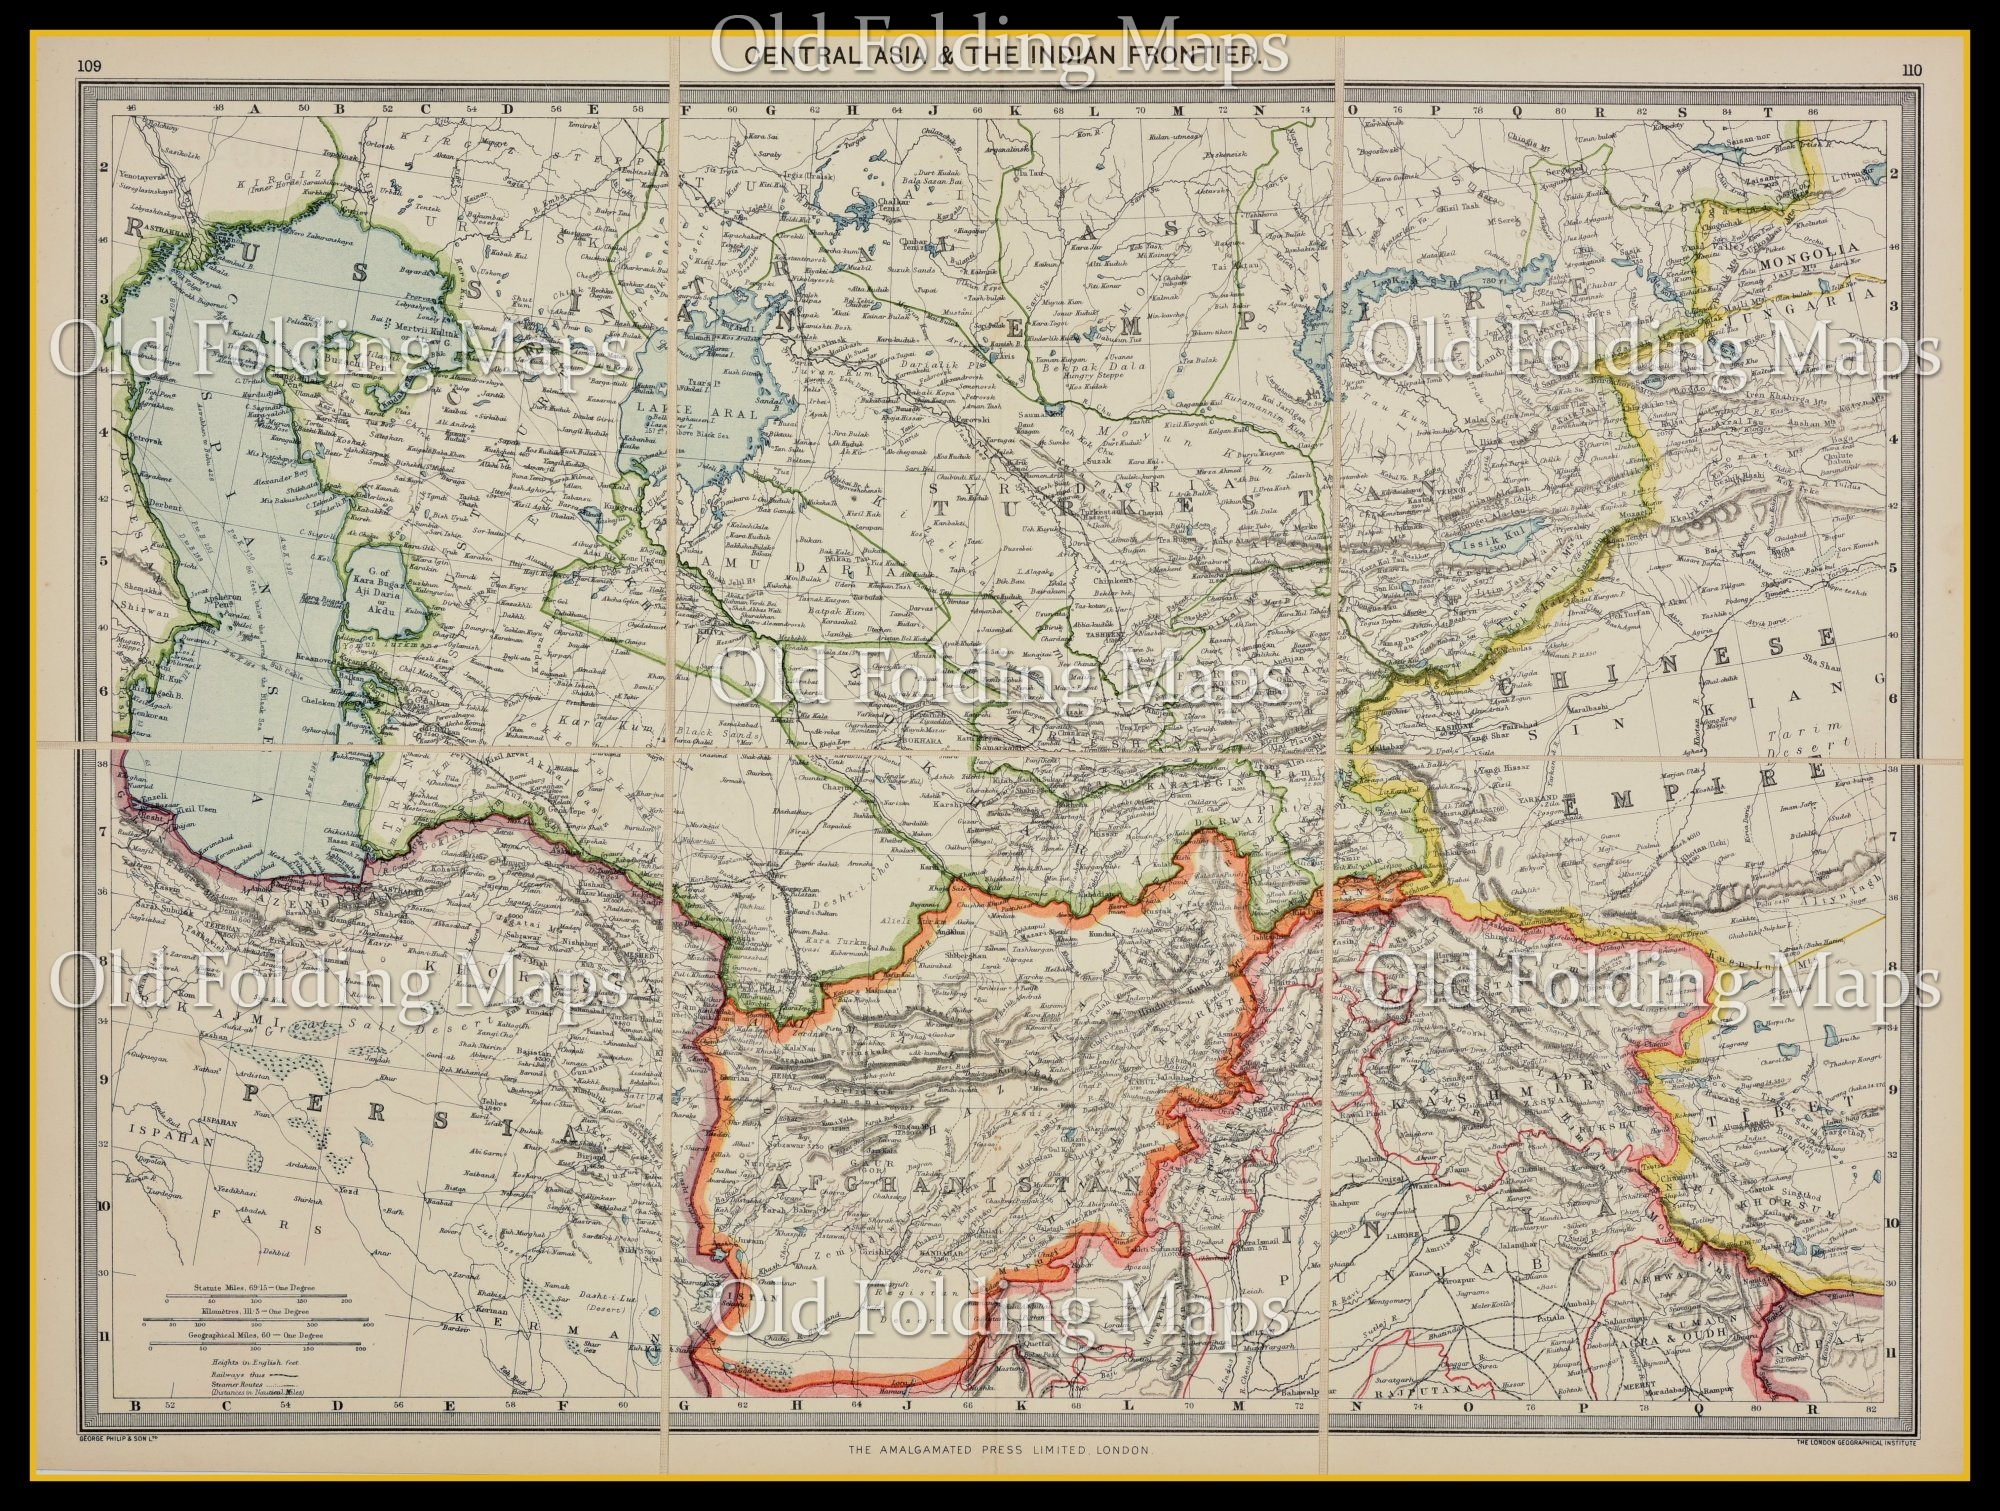 Old Map of Central Asia & The Indian Frontier circa 1900